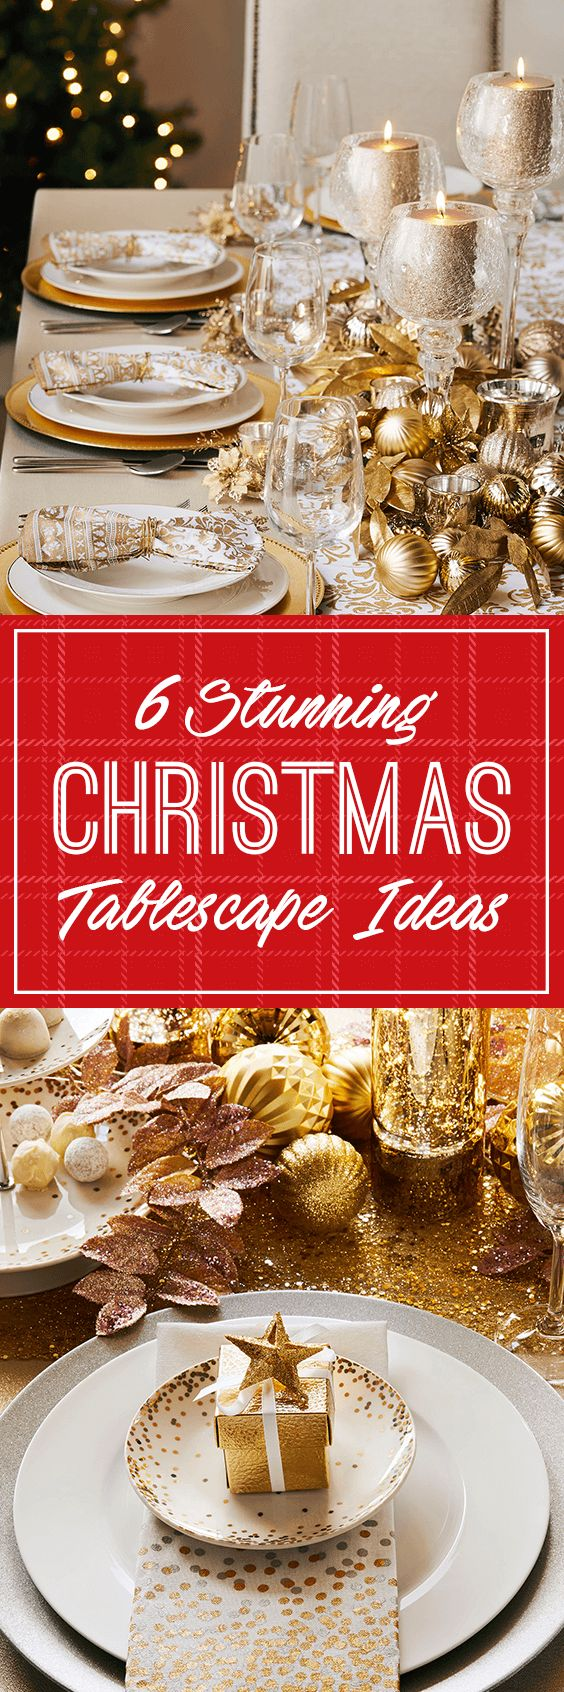 6 Stunning Christmas Tablescape Ideas from Kitchen Stuff Plus